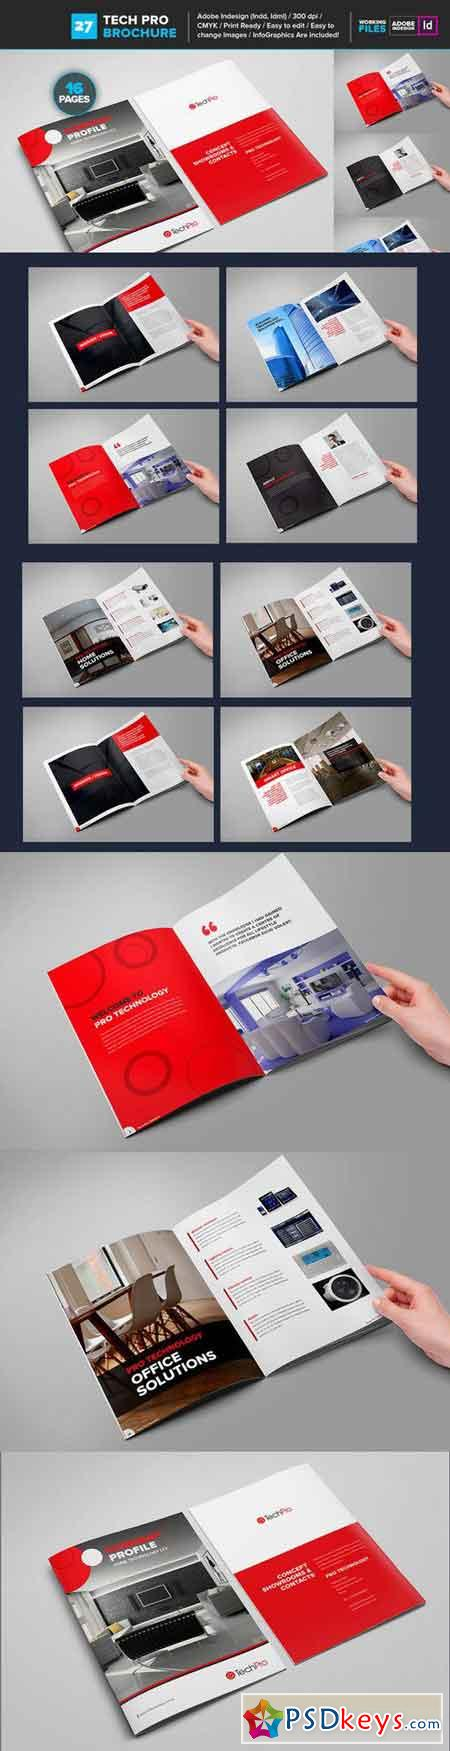 Home Technology Brochure Template 27 686487